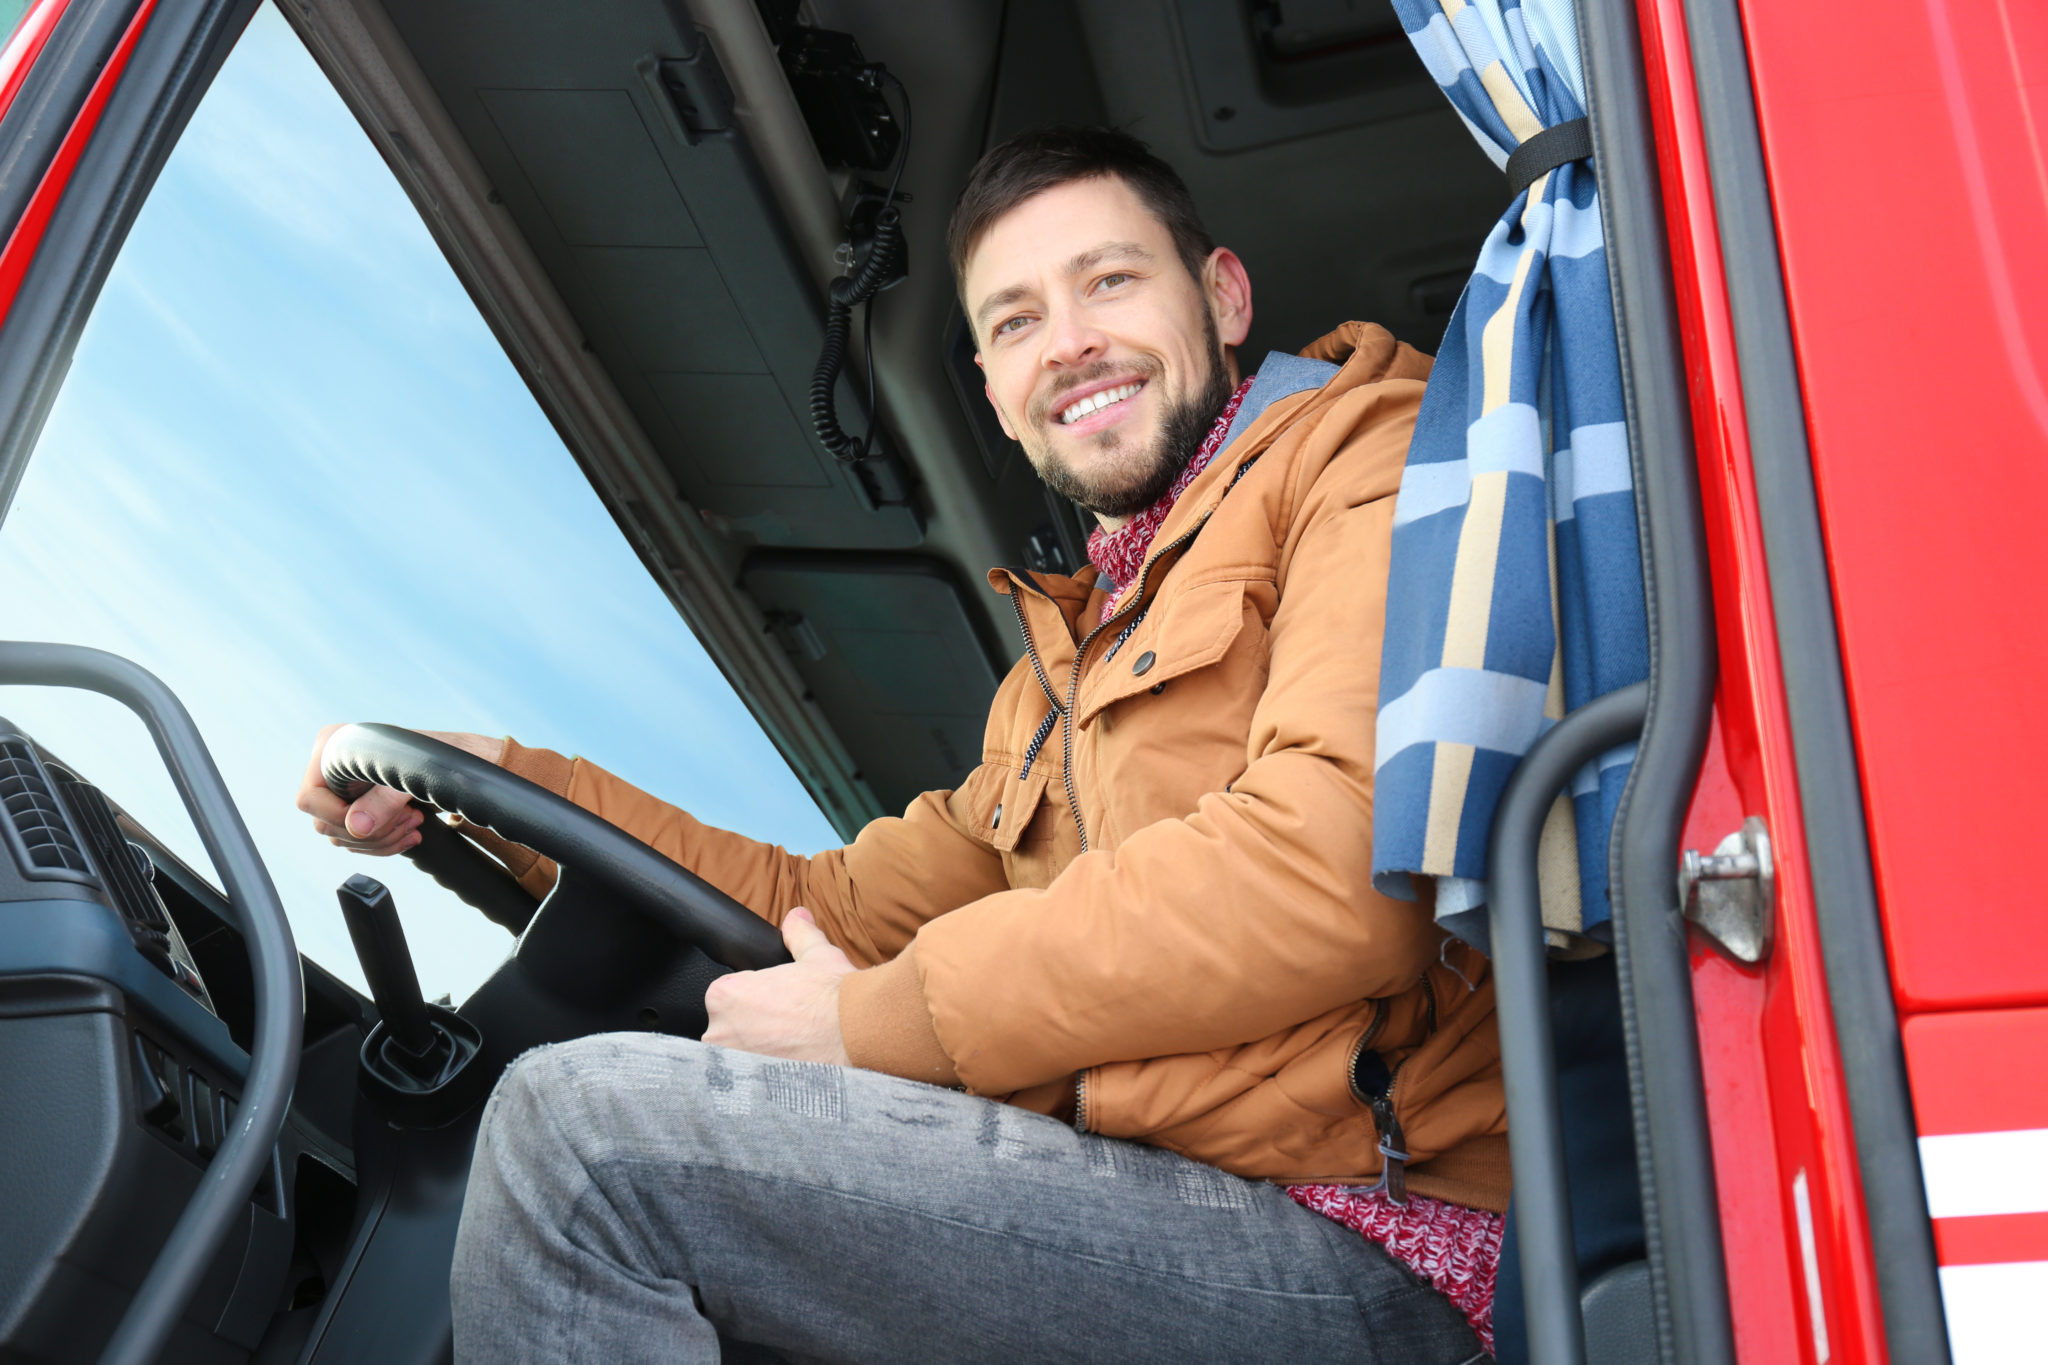 Does Truck Driver Training Prevent Distracted Driving?